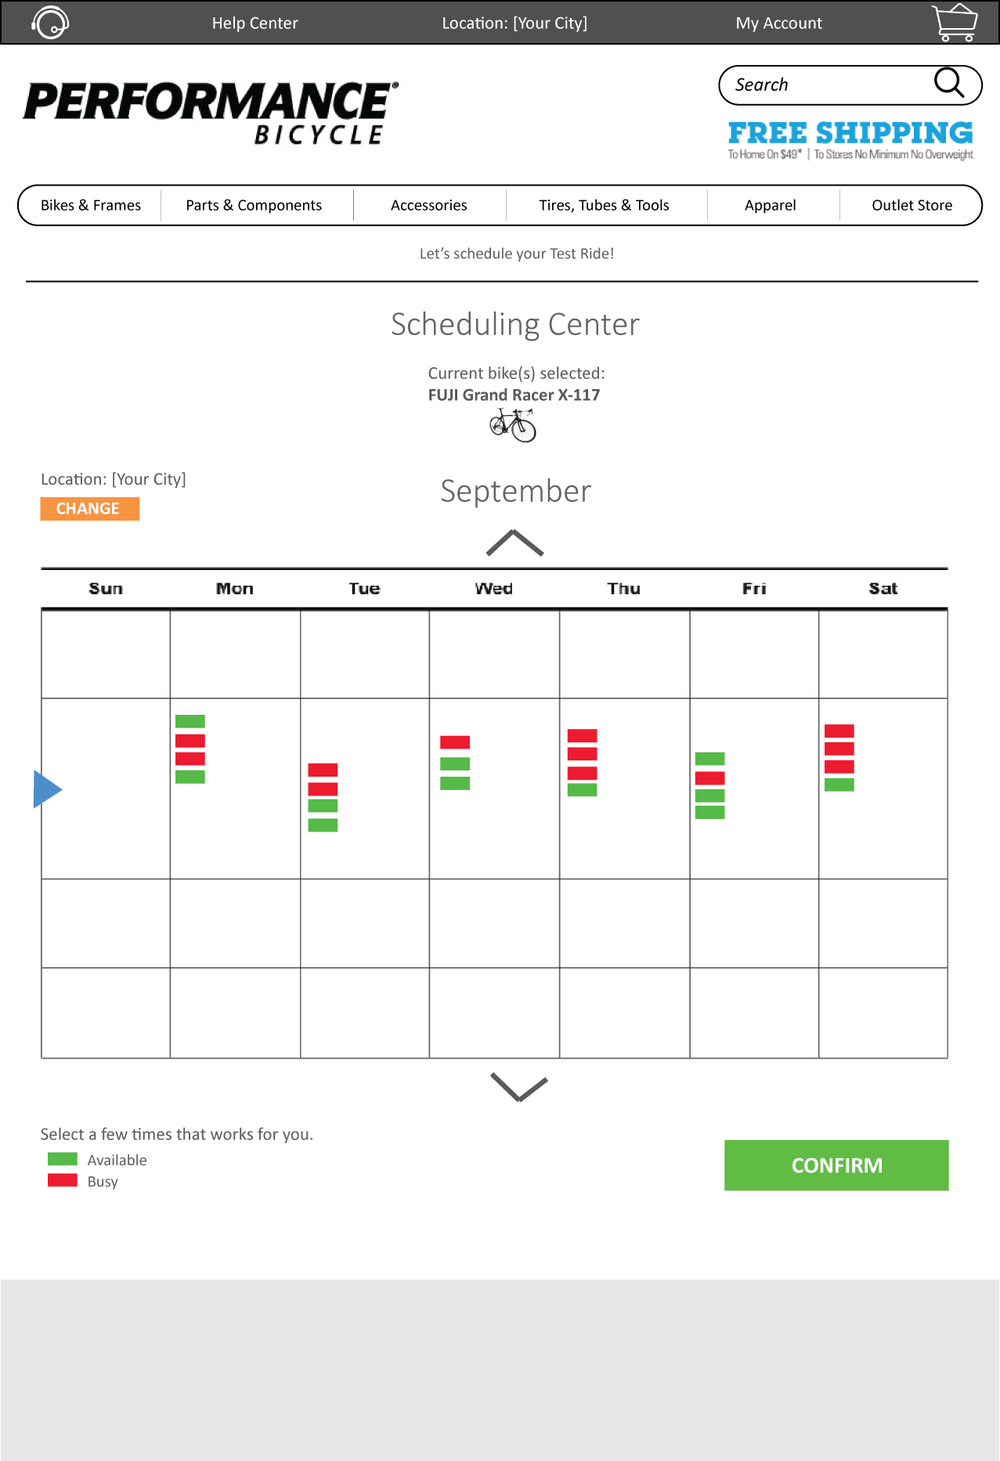 Scheduling Center   allows potential bike owners to test ride bike(s) of their choice at their local Performance Bicycle store.  My idea was to have a calendar showing the current week where the user can select time slots to make an appointment.